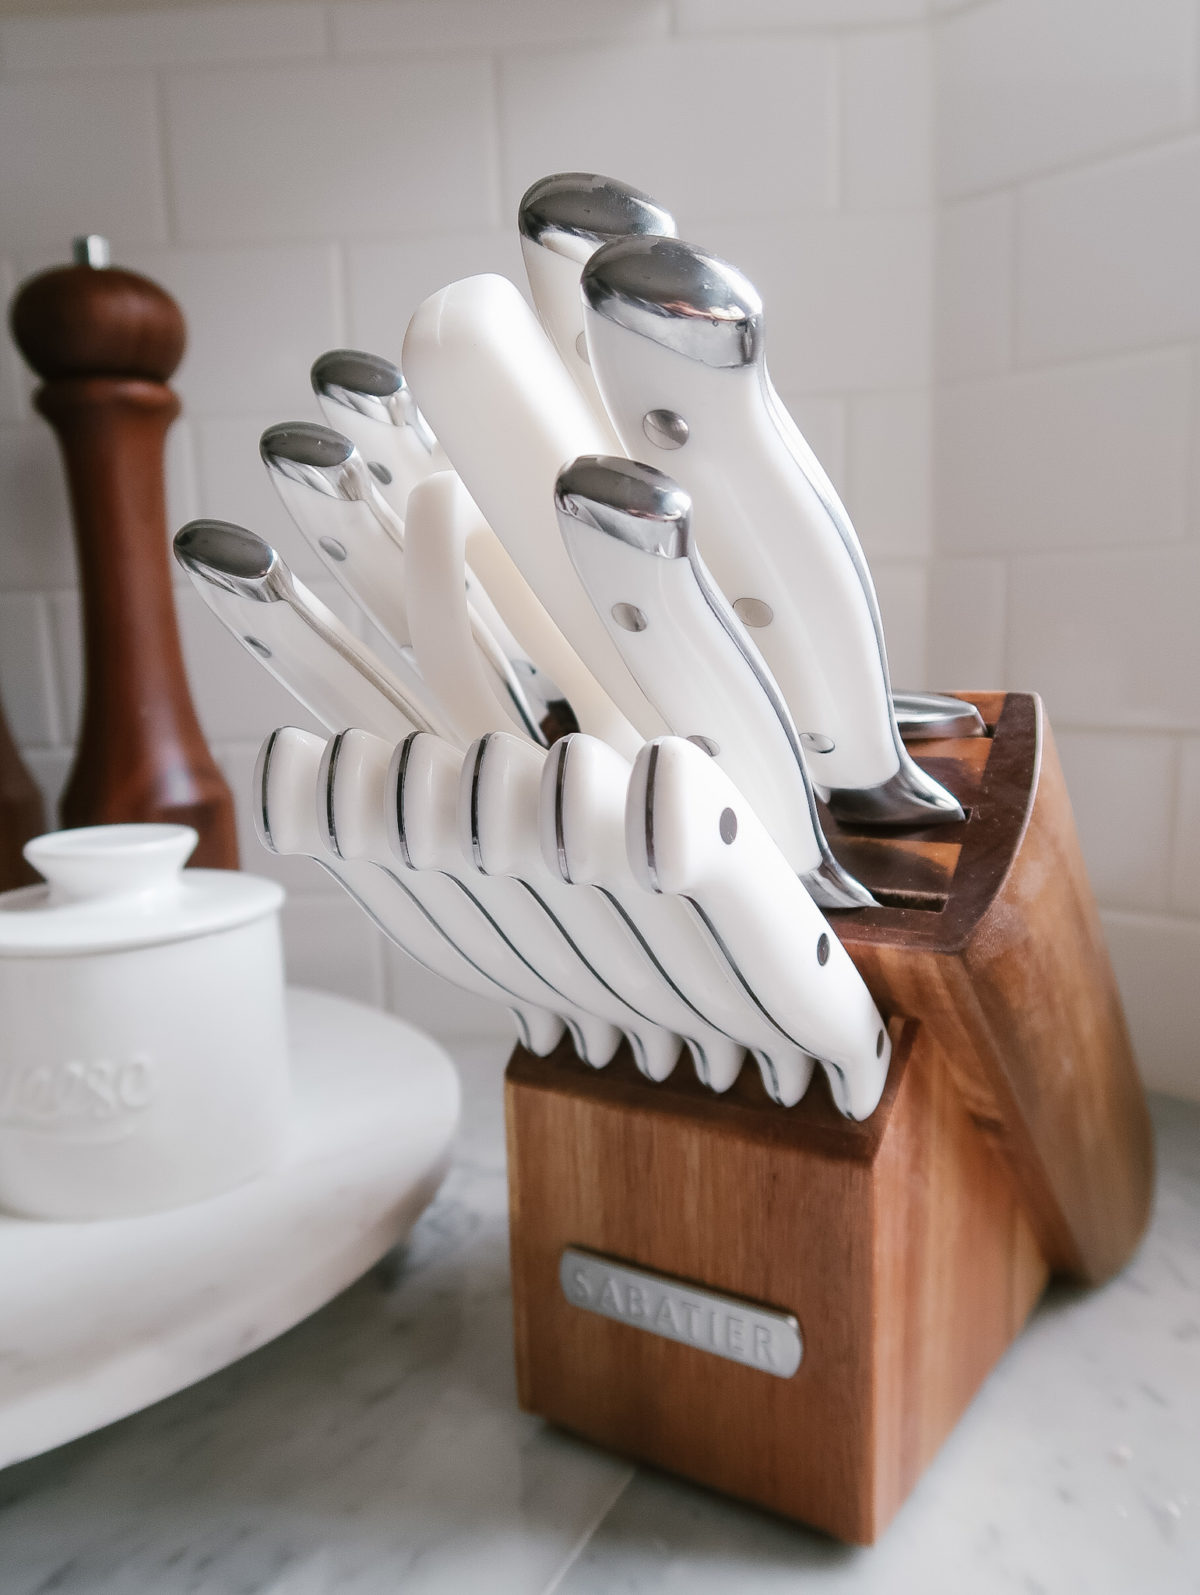 White knife set with wooden block